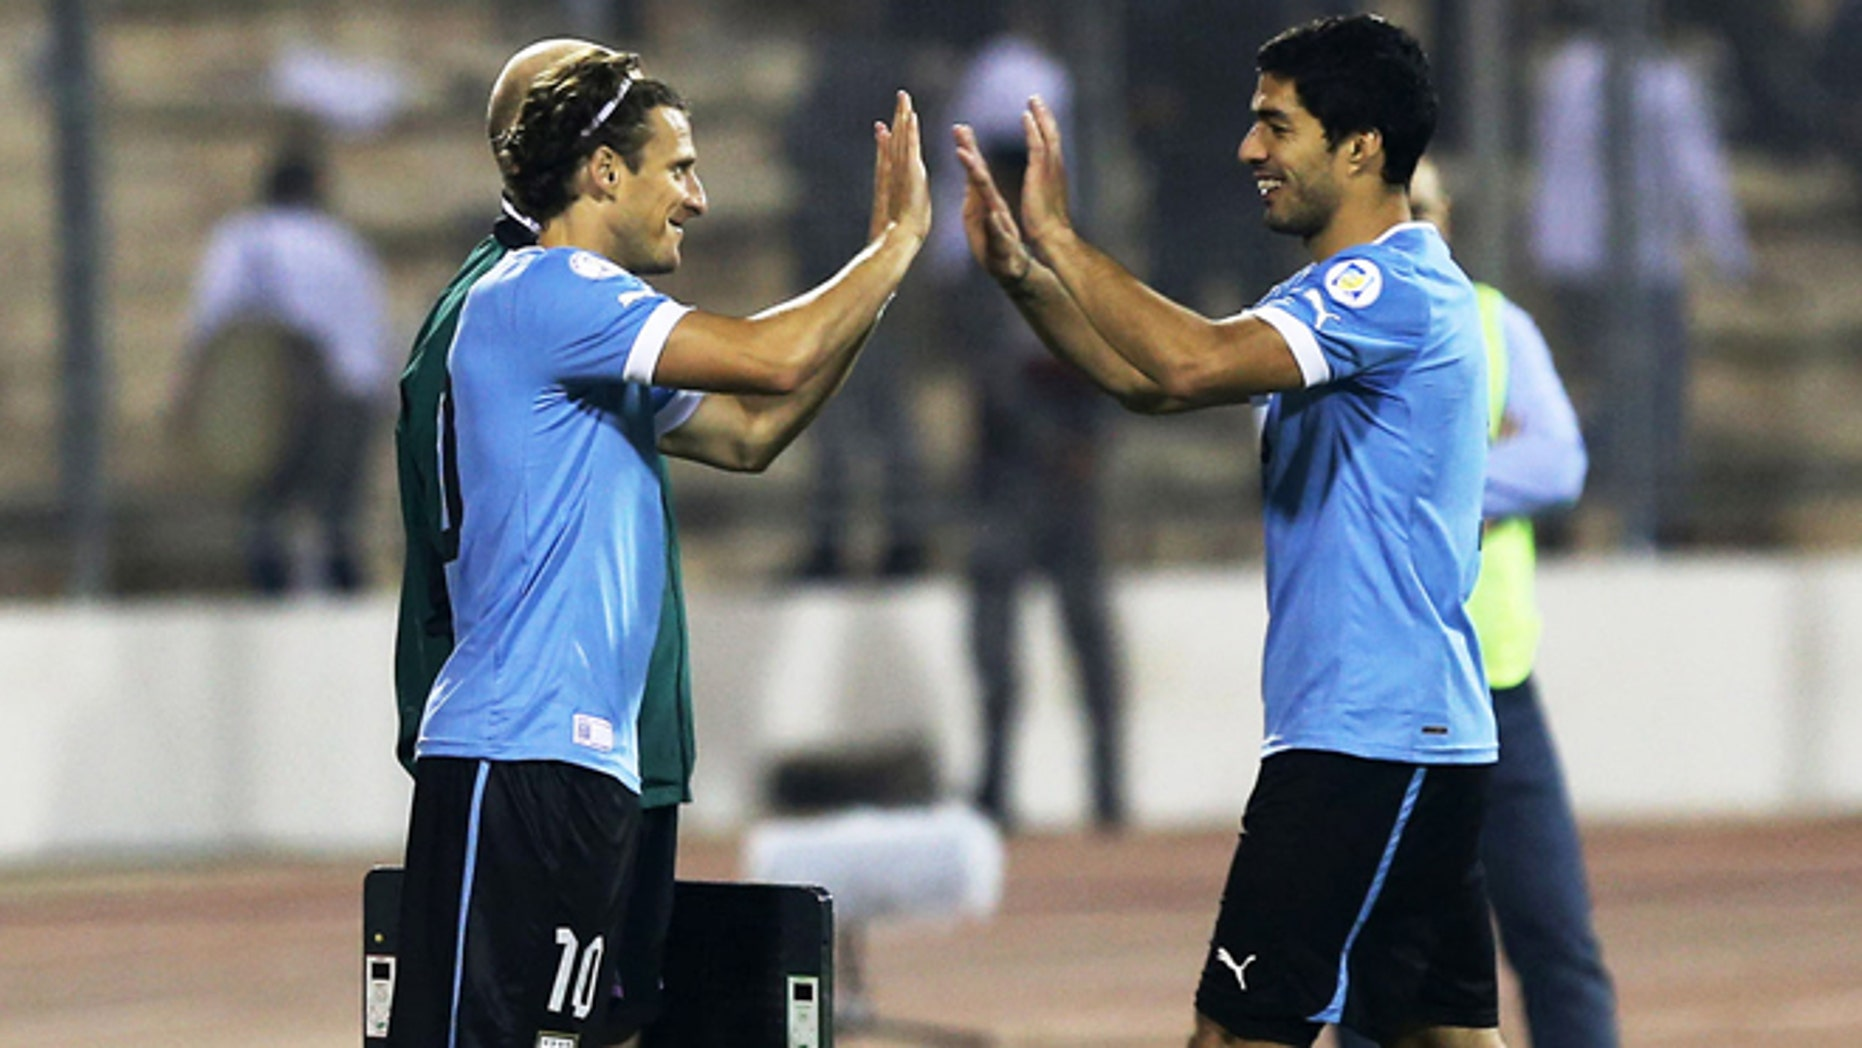 AMMAN, JORDAN- NOVEMBER 13: Diego Forlan of Uruguay replaces Luis Suarez during the FIFA 2014 World Cup Qualifier: Intercontinental Play-off First Leg between Jordan and Uruguay on November 13, 2013 in Amman, Jordan. (Photo by Salah Malkawi/ Getty Images)